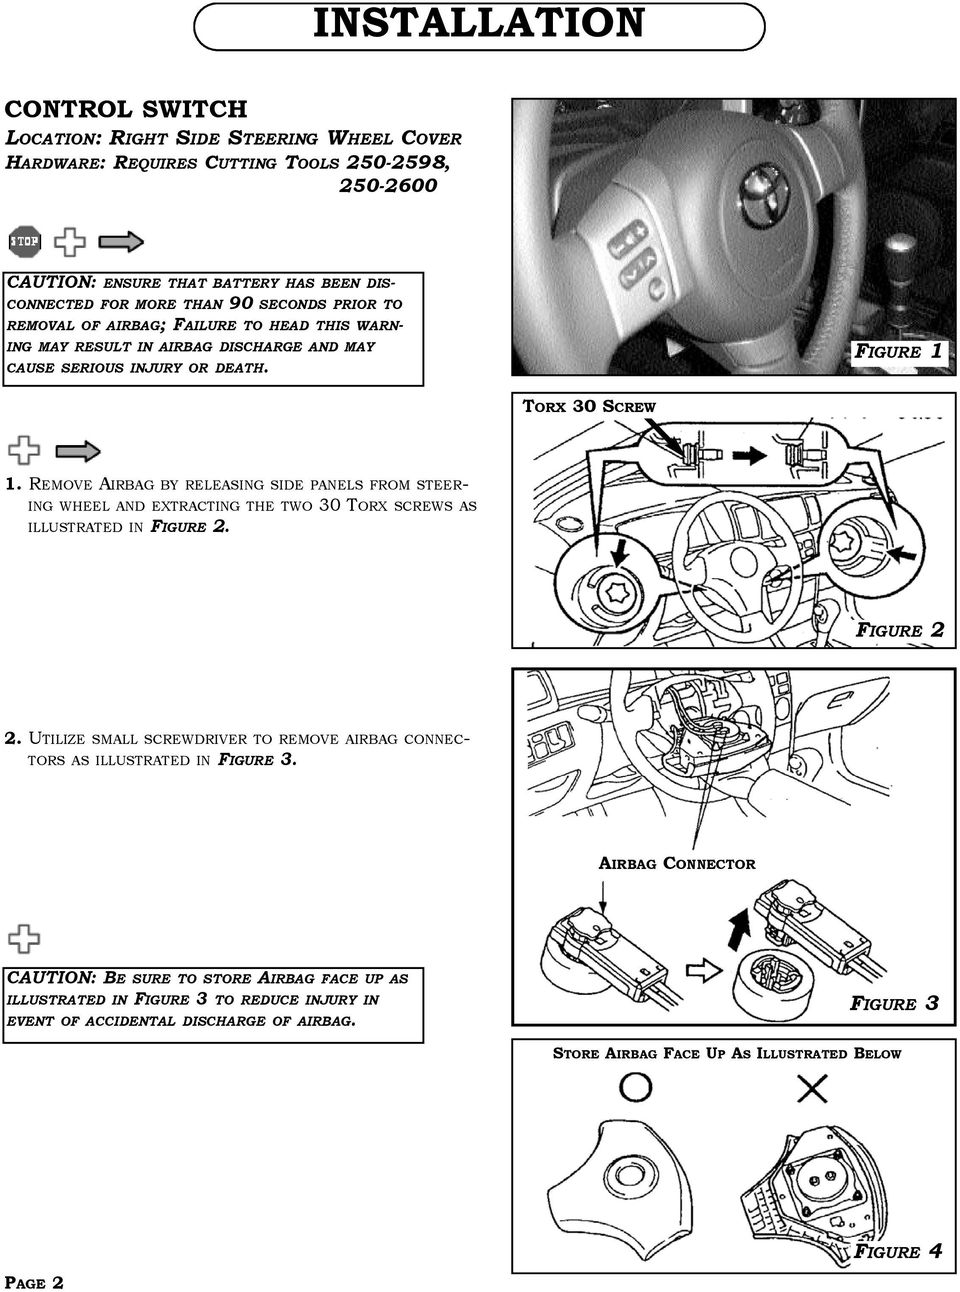 REMOVE AIRBAG BY RELEASING SIDE PANELS FROM STEER- ING WHEEL AND EXTRACTING THE TWO 30 TORX SCREWS AS ILLUSTRATED IN FIGURE 2. FIGURE 2 2.